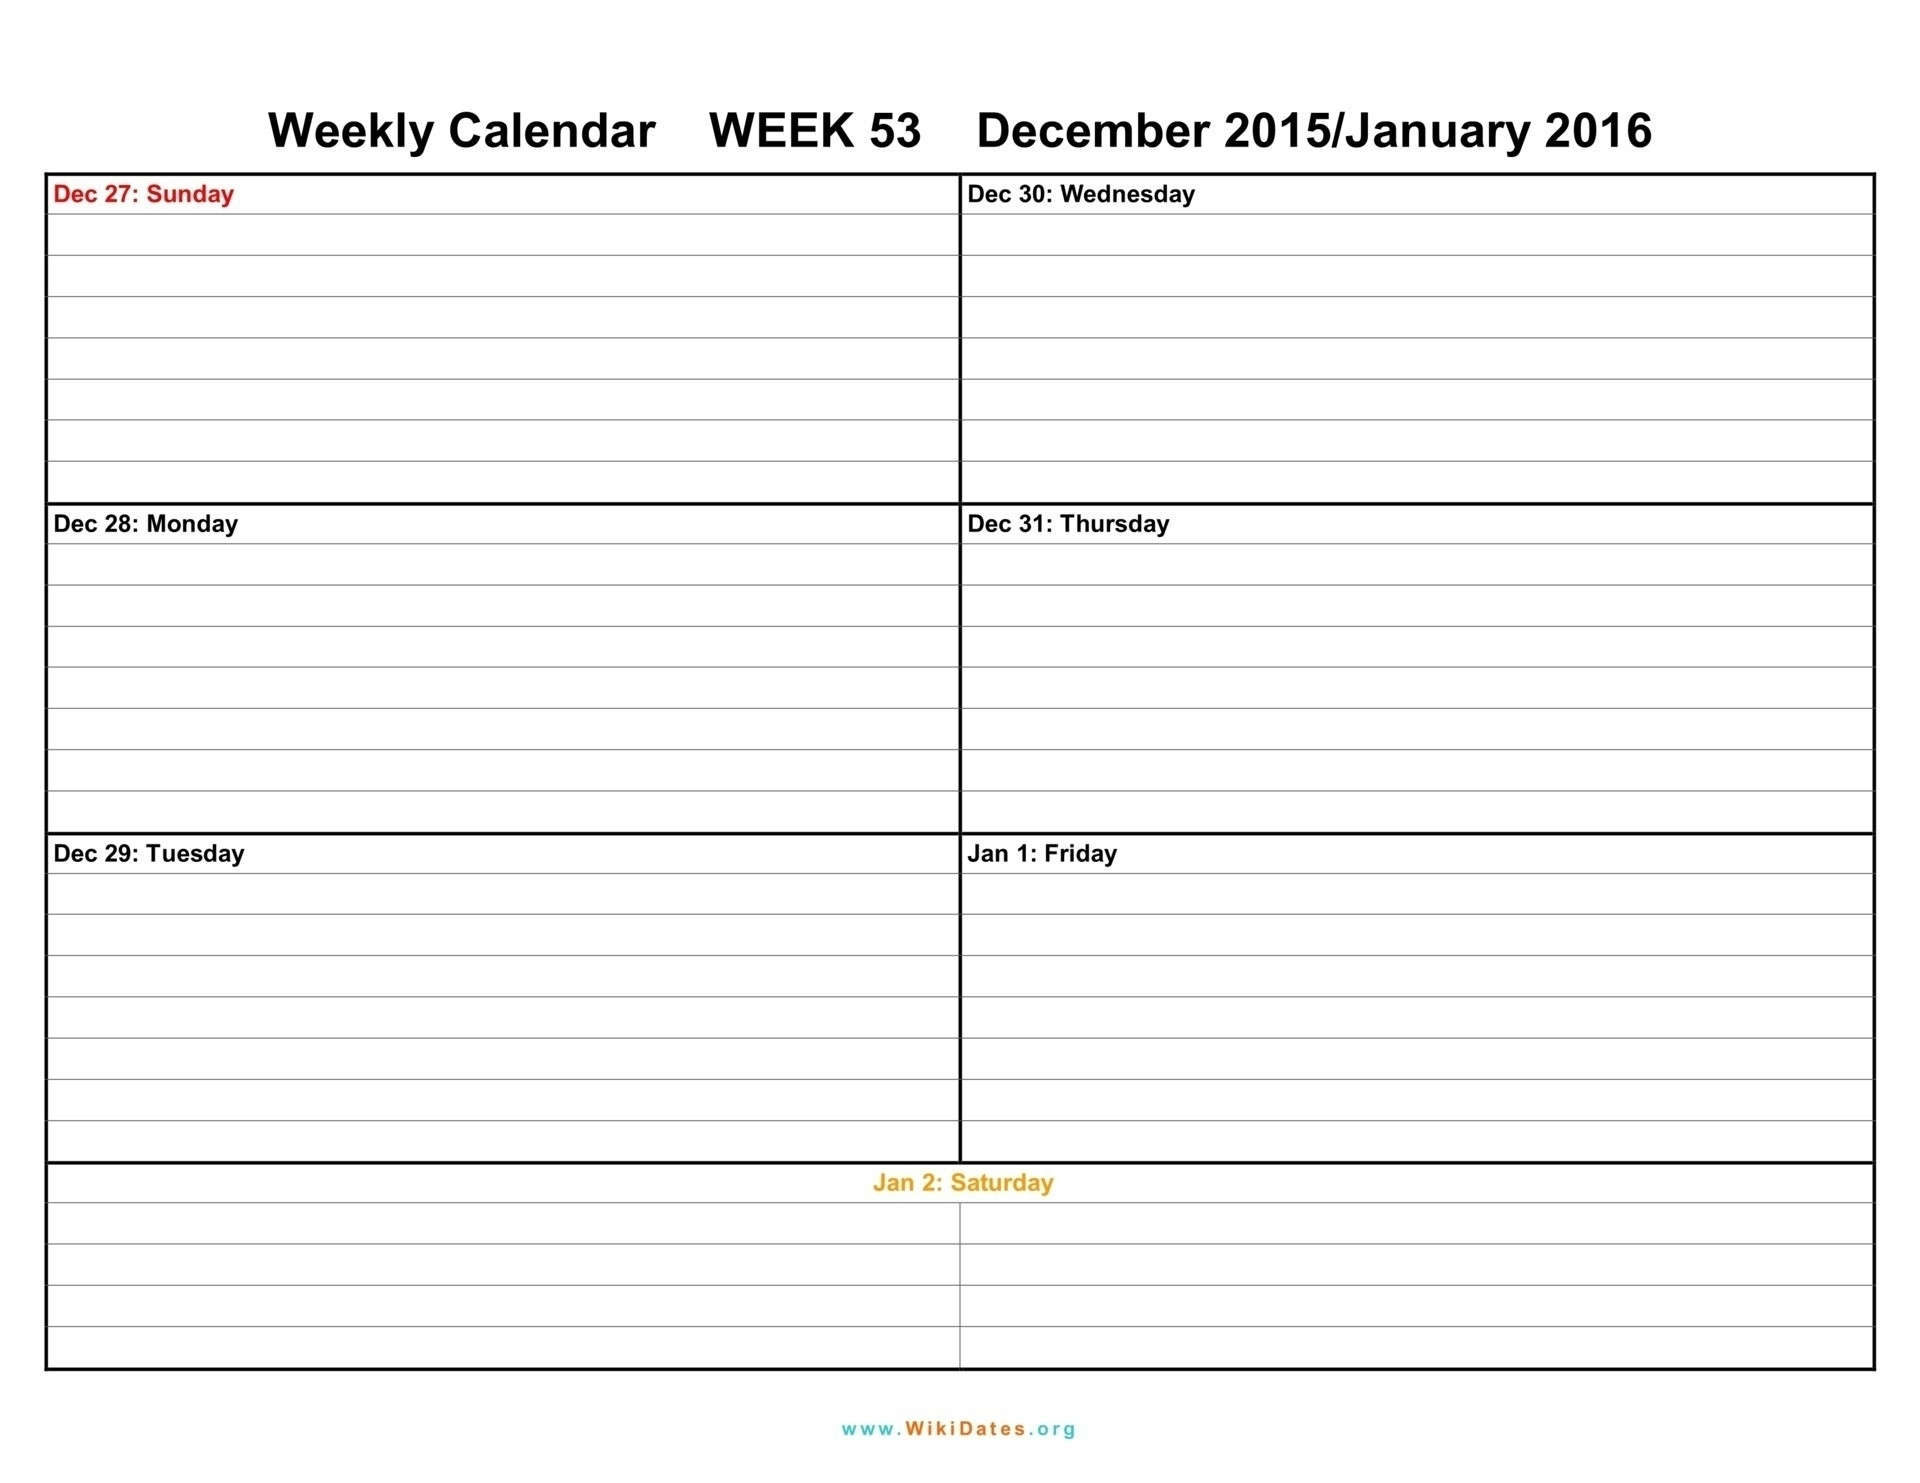 Schedule Template Two Week Calendar Word Weeks Blank Printable | Smorad intended for Two Week Monday To Friday Calendars